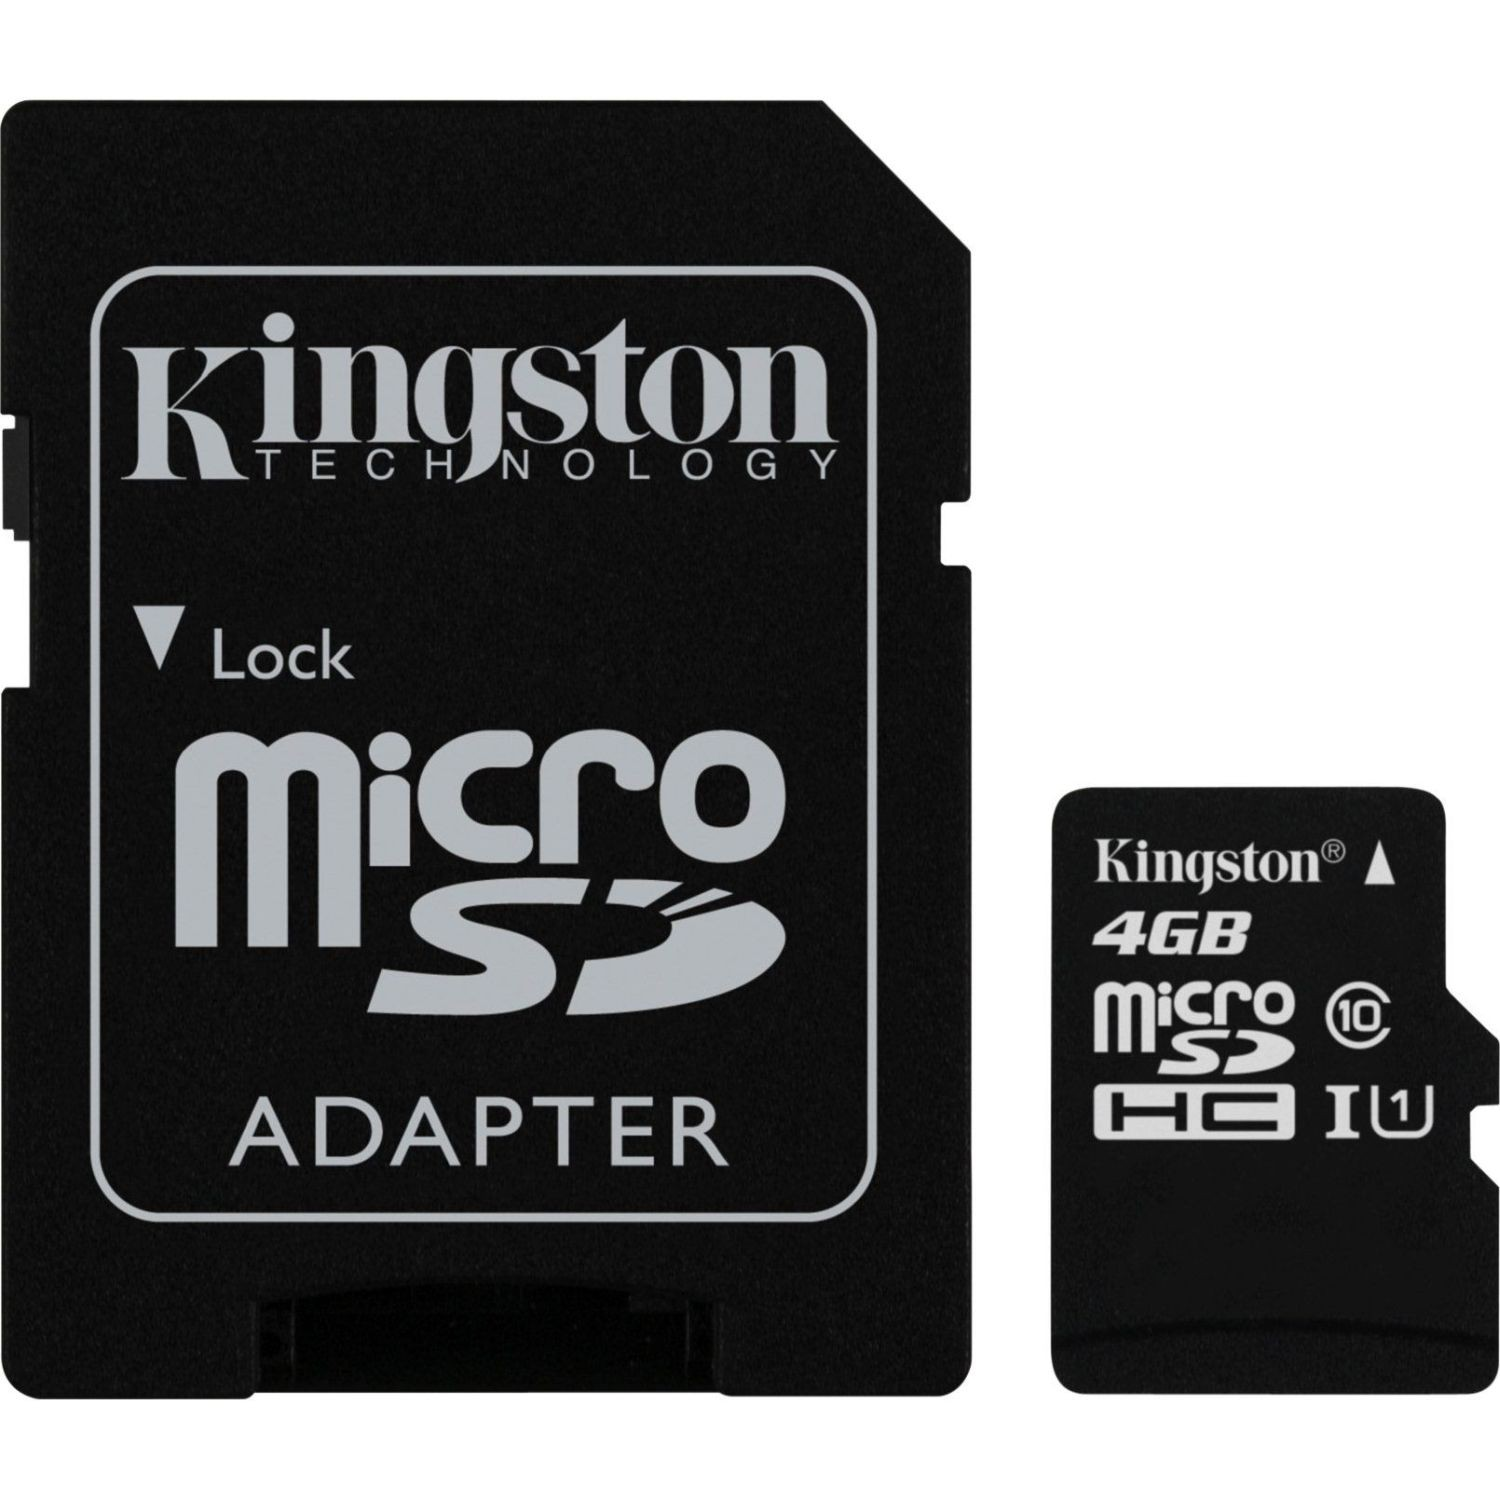 Kingston 4GB microSDHC Card Class 10